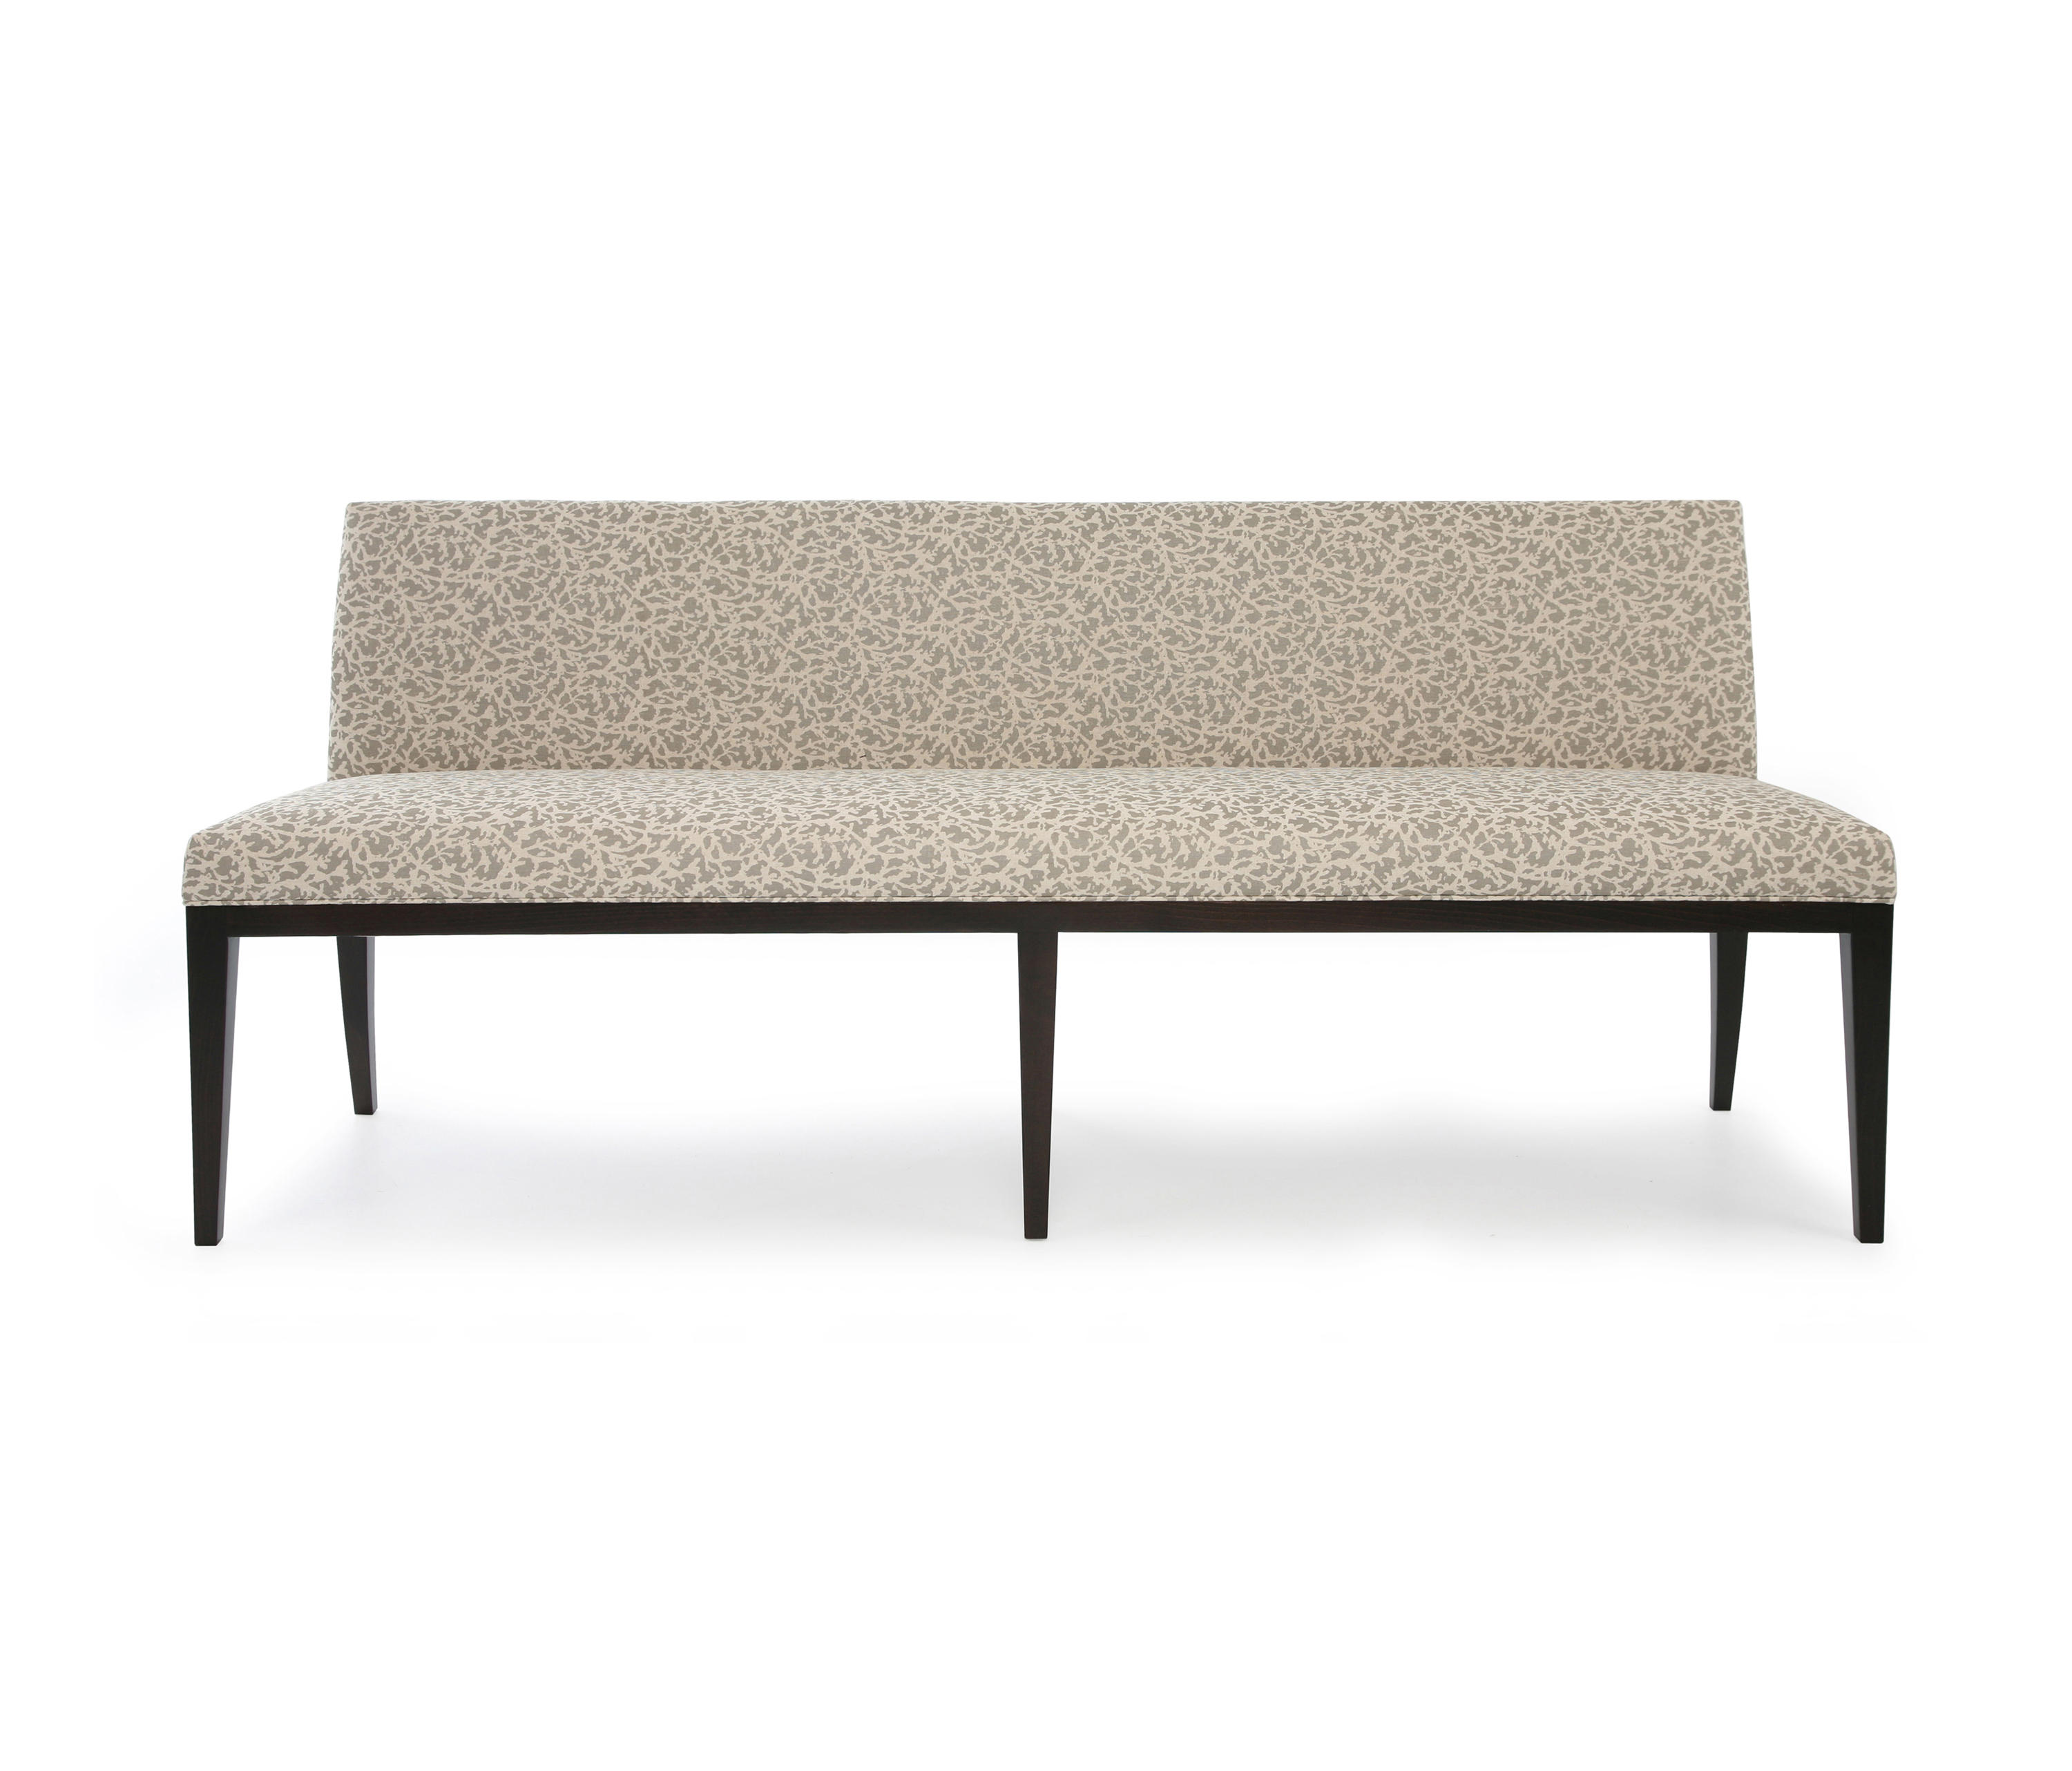 Byron bench waiting area benches from the sofa chair company ltd architonic The sofa company